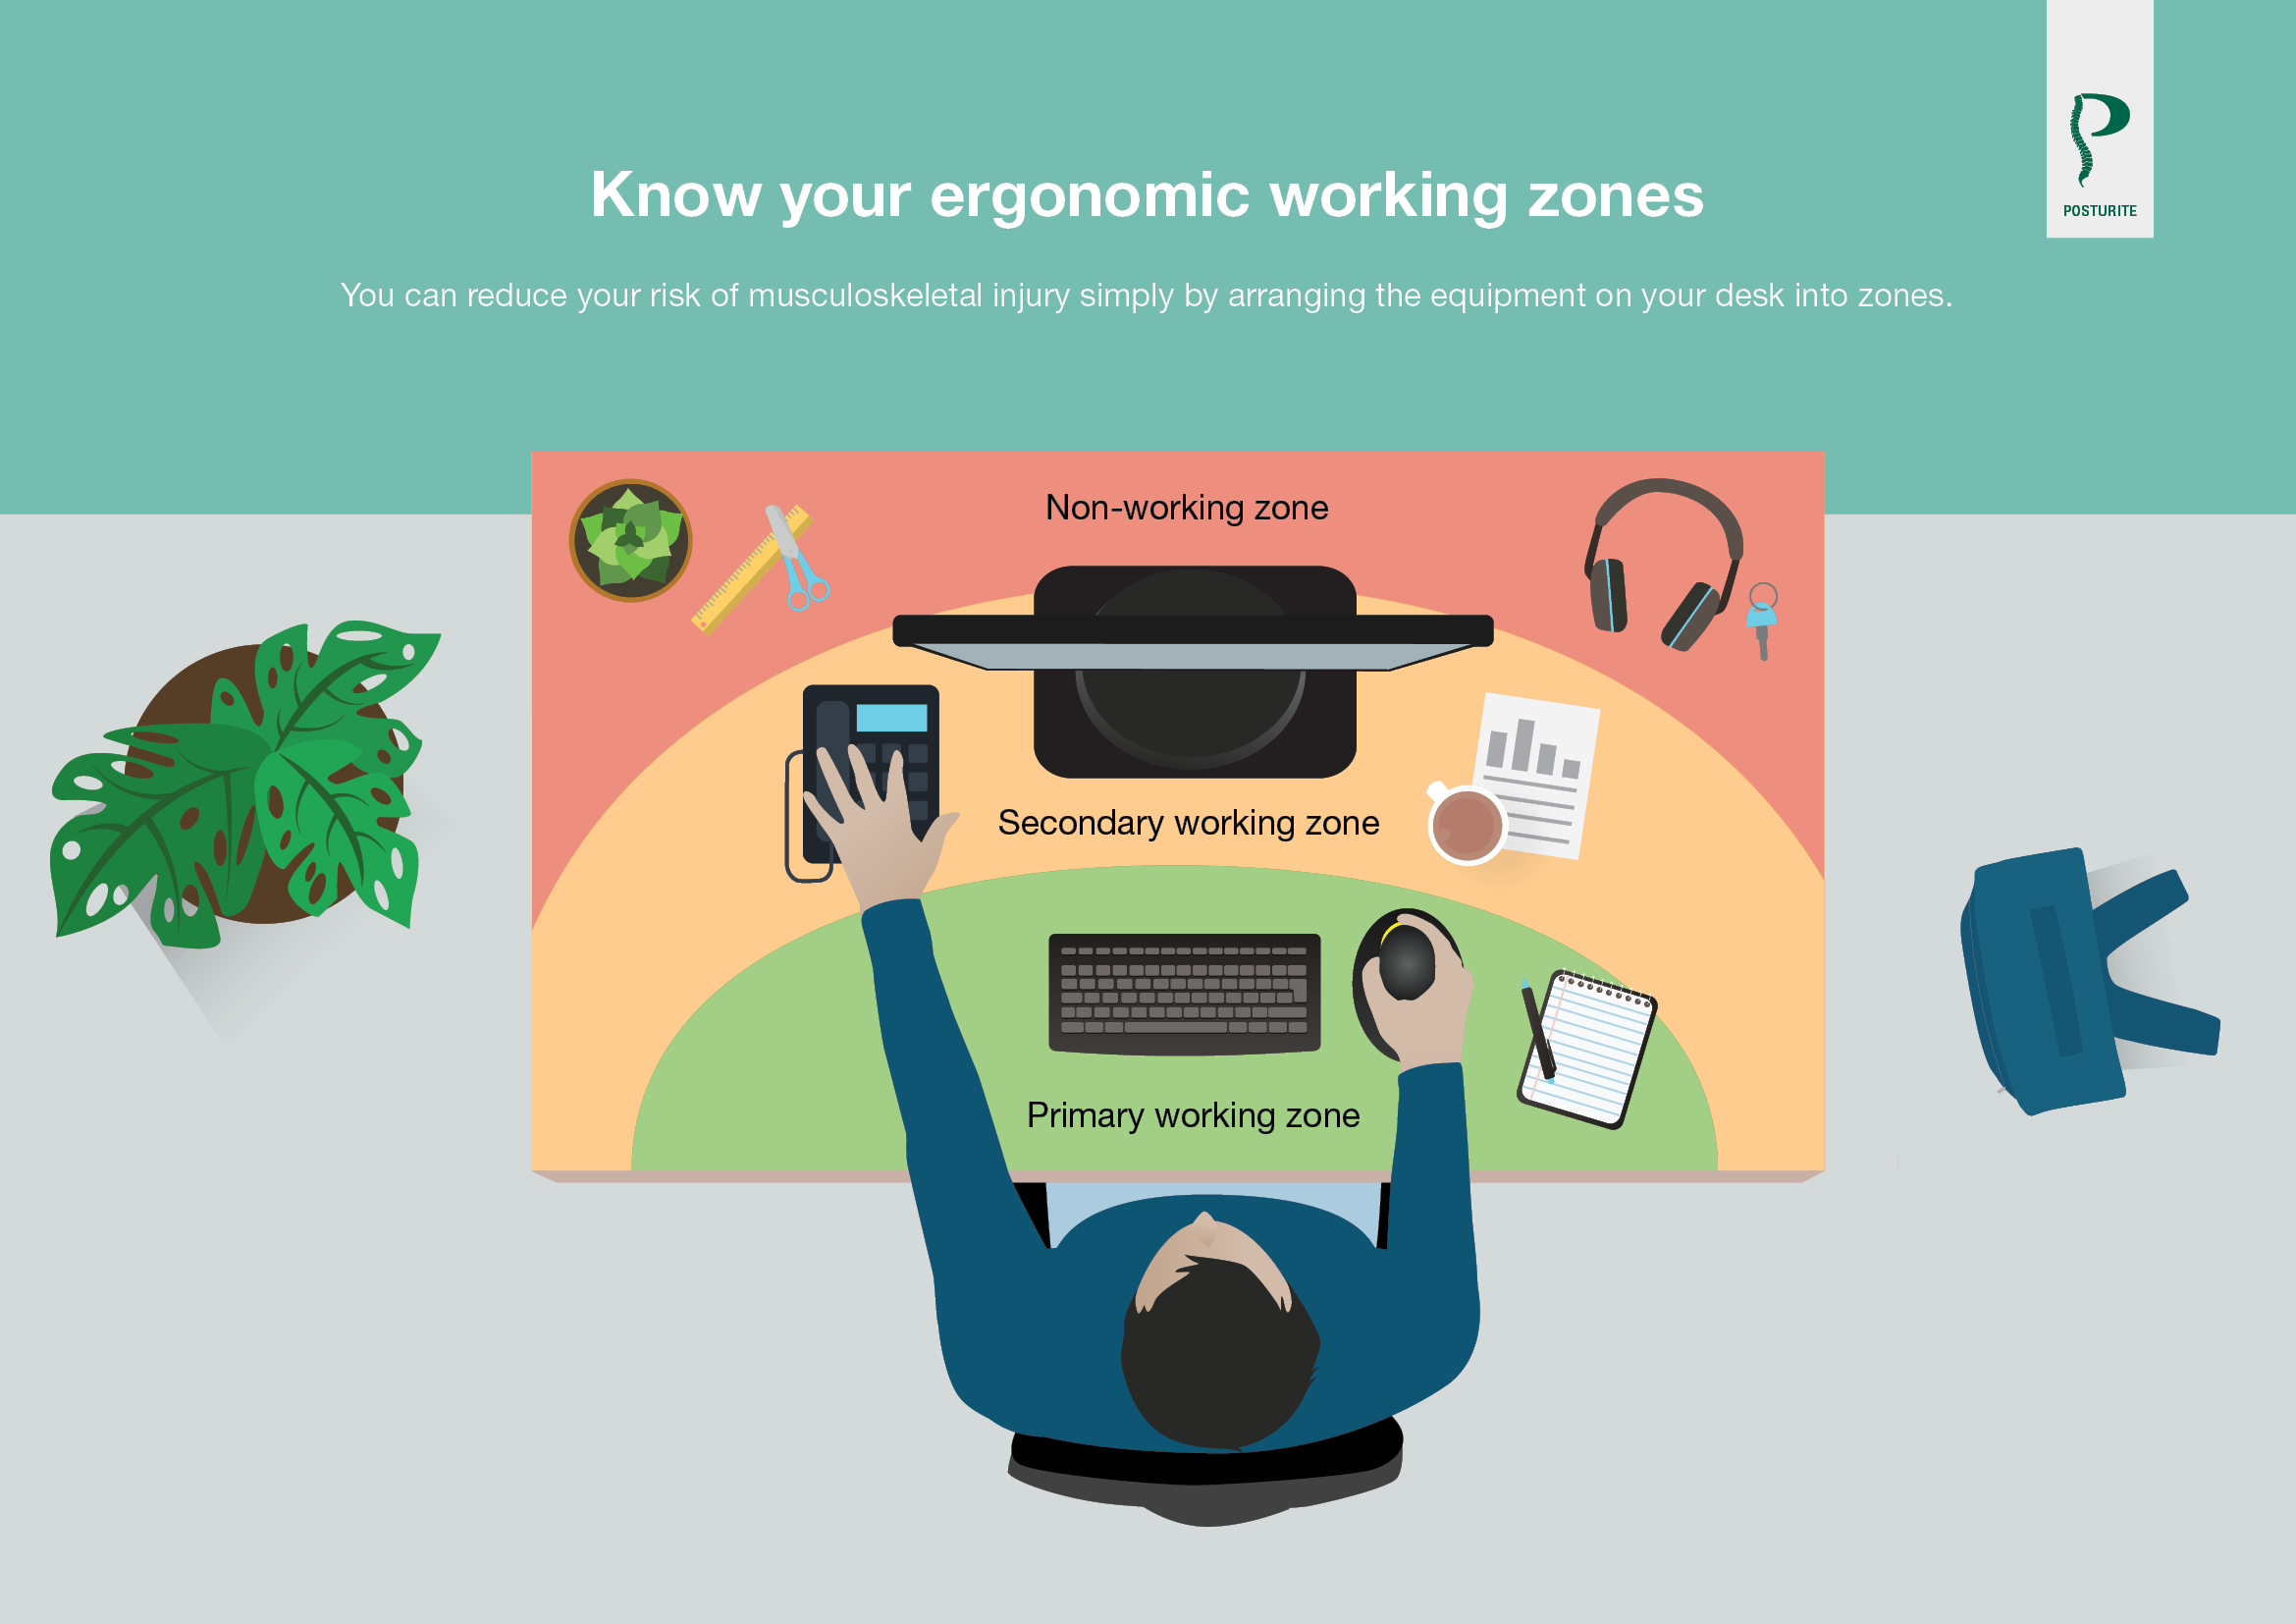 Know your ergonomic working zones